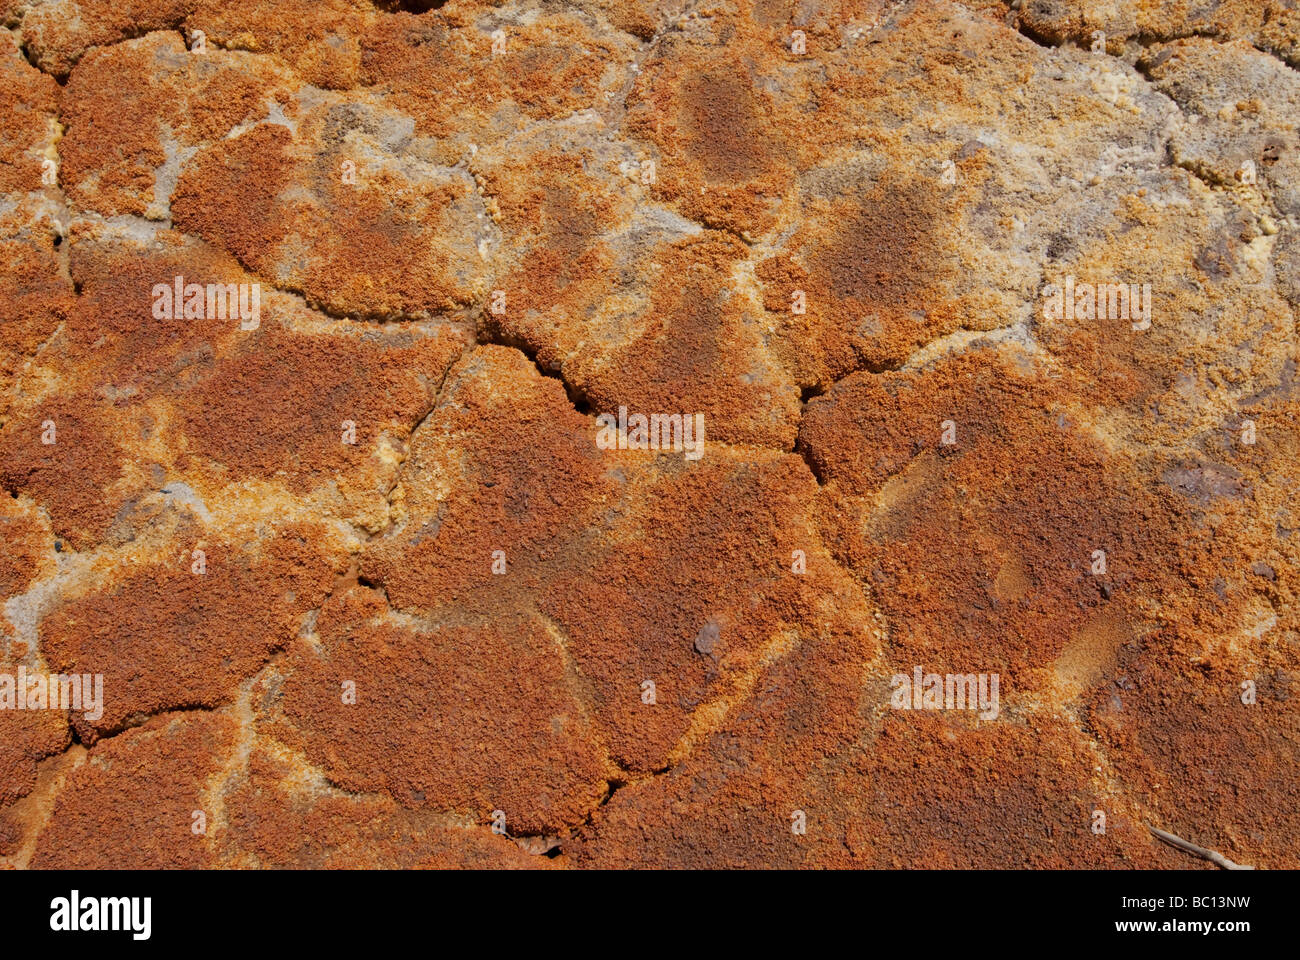 Detail of acid sulfate soil - Stock Image